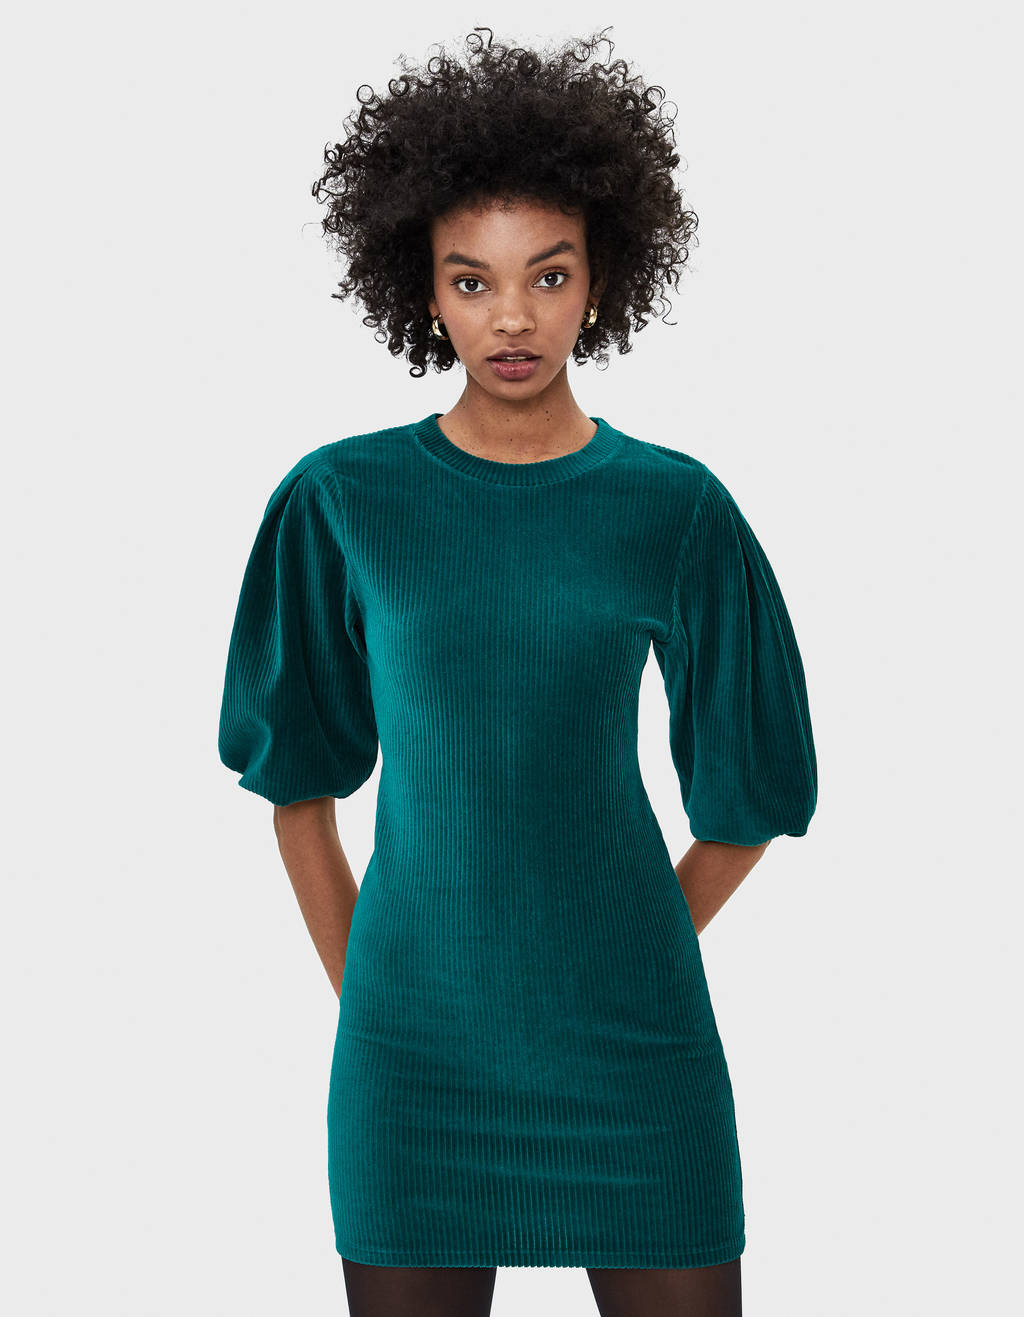 Puff sleeve corduroy dress